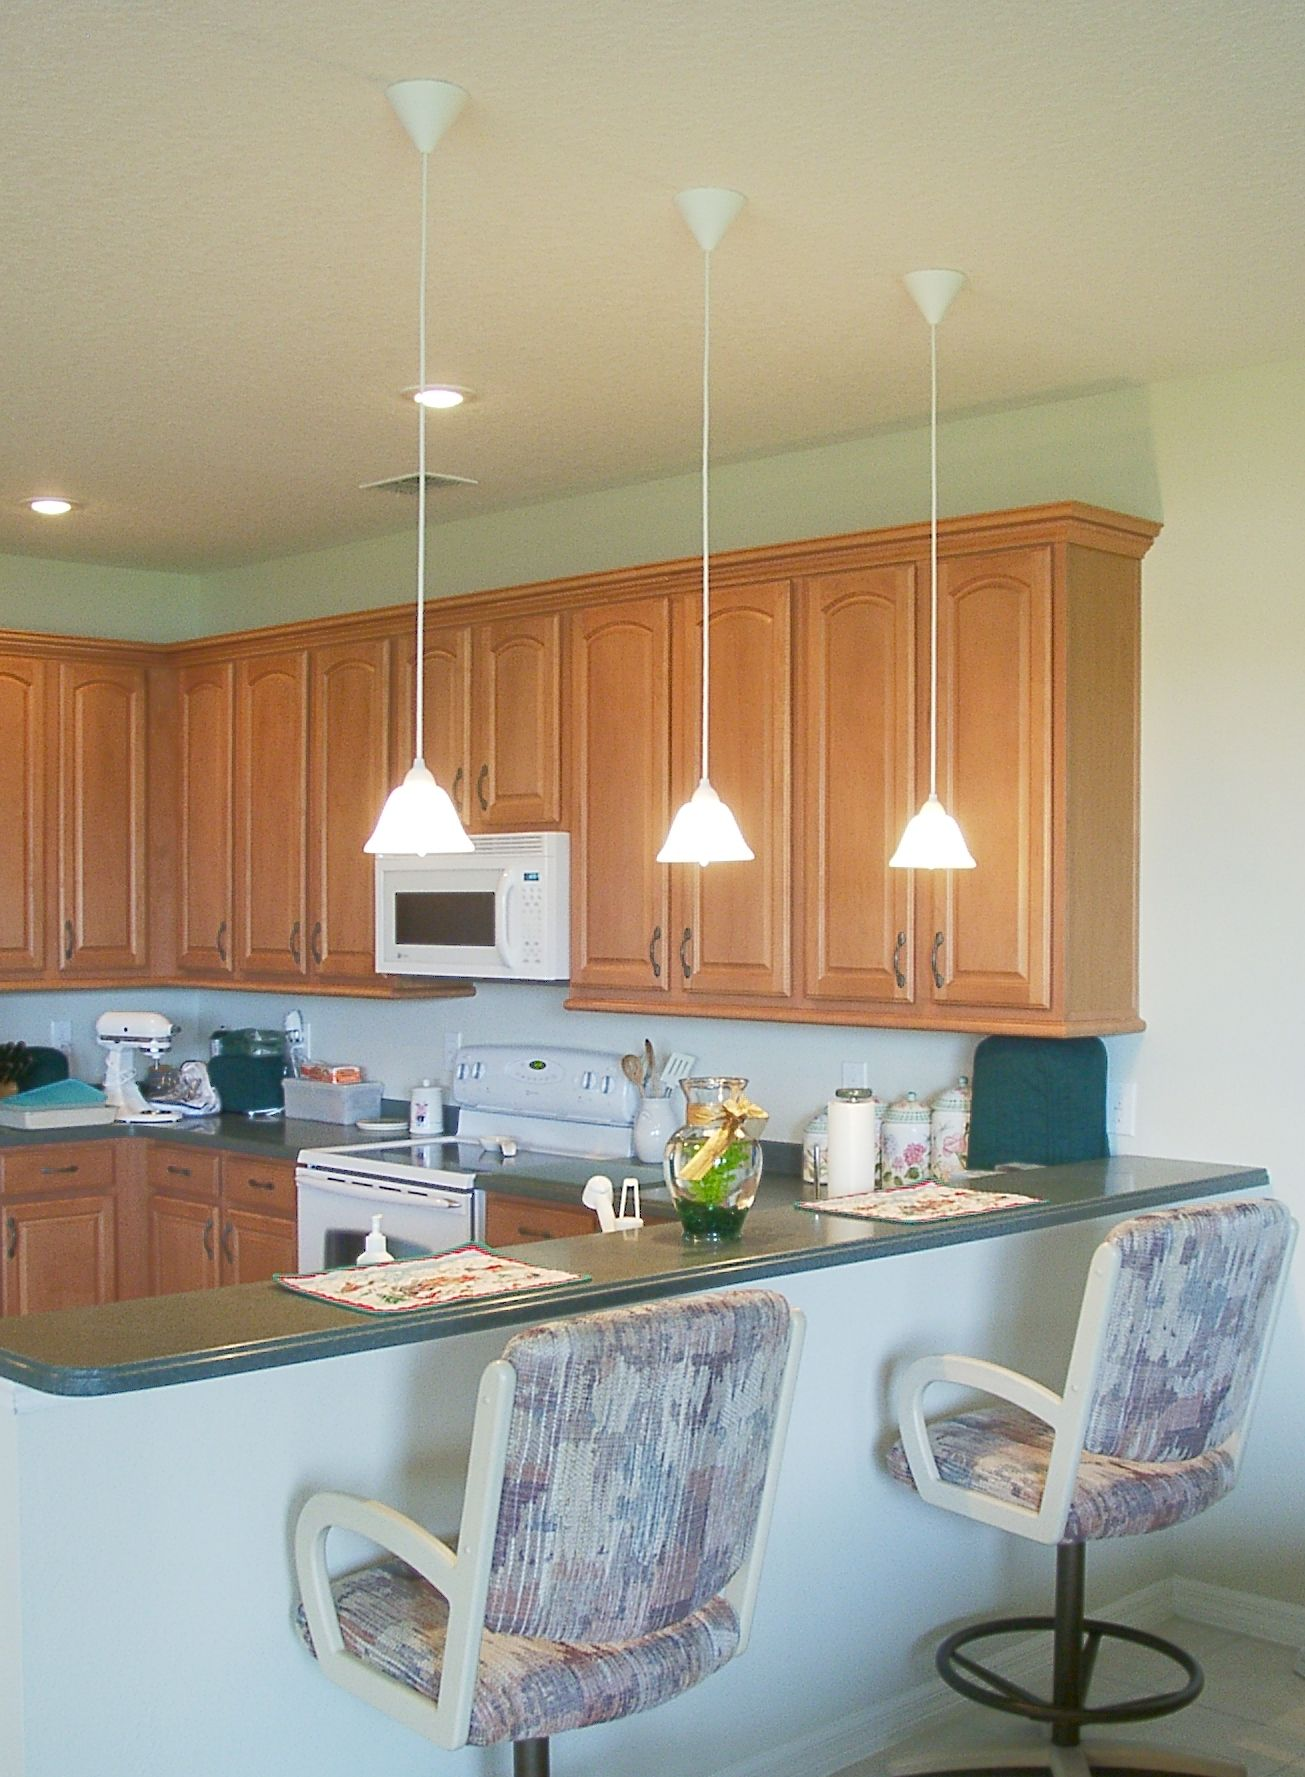 hang lights over kitchen counter | Home Ideas!! | Pinterest ...